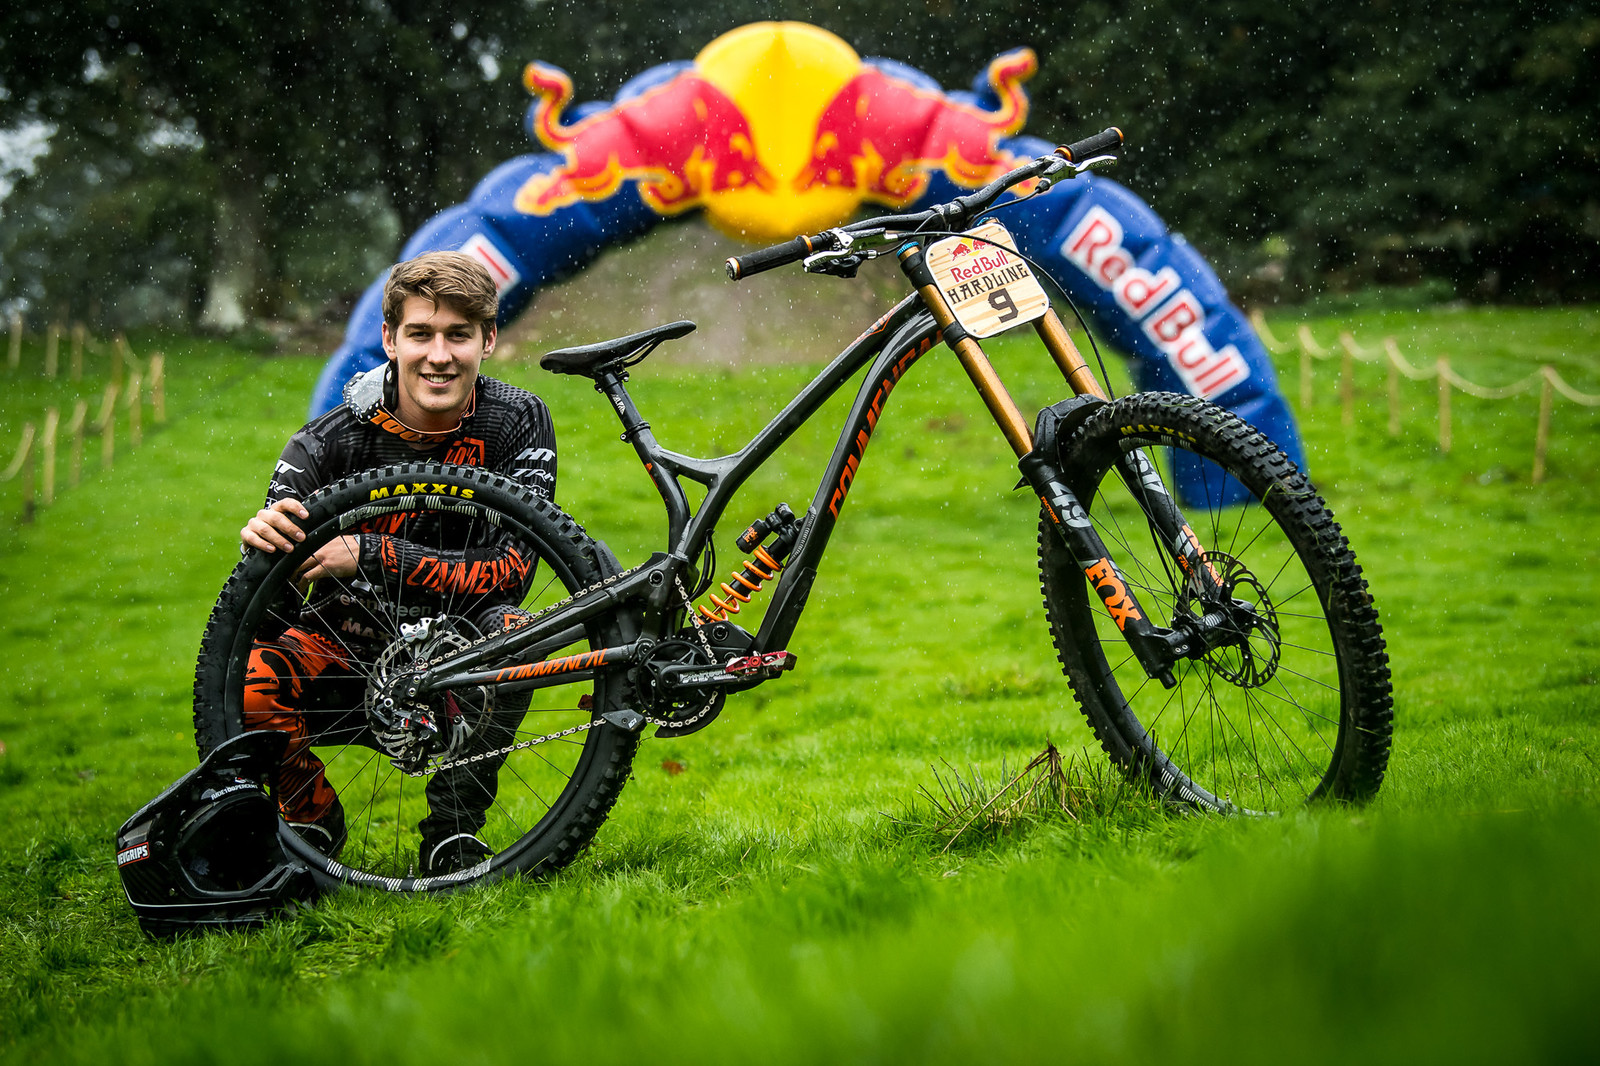 Reece Wilson and His Commencal Supreme DH 29 - Red Bull Hardline 2018 Riders and Bikes - Mountain Biking Pictures - Vital MTB